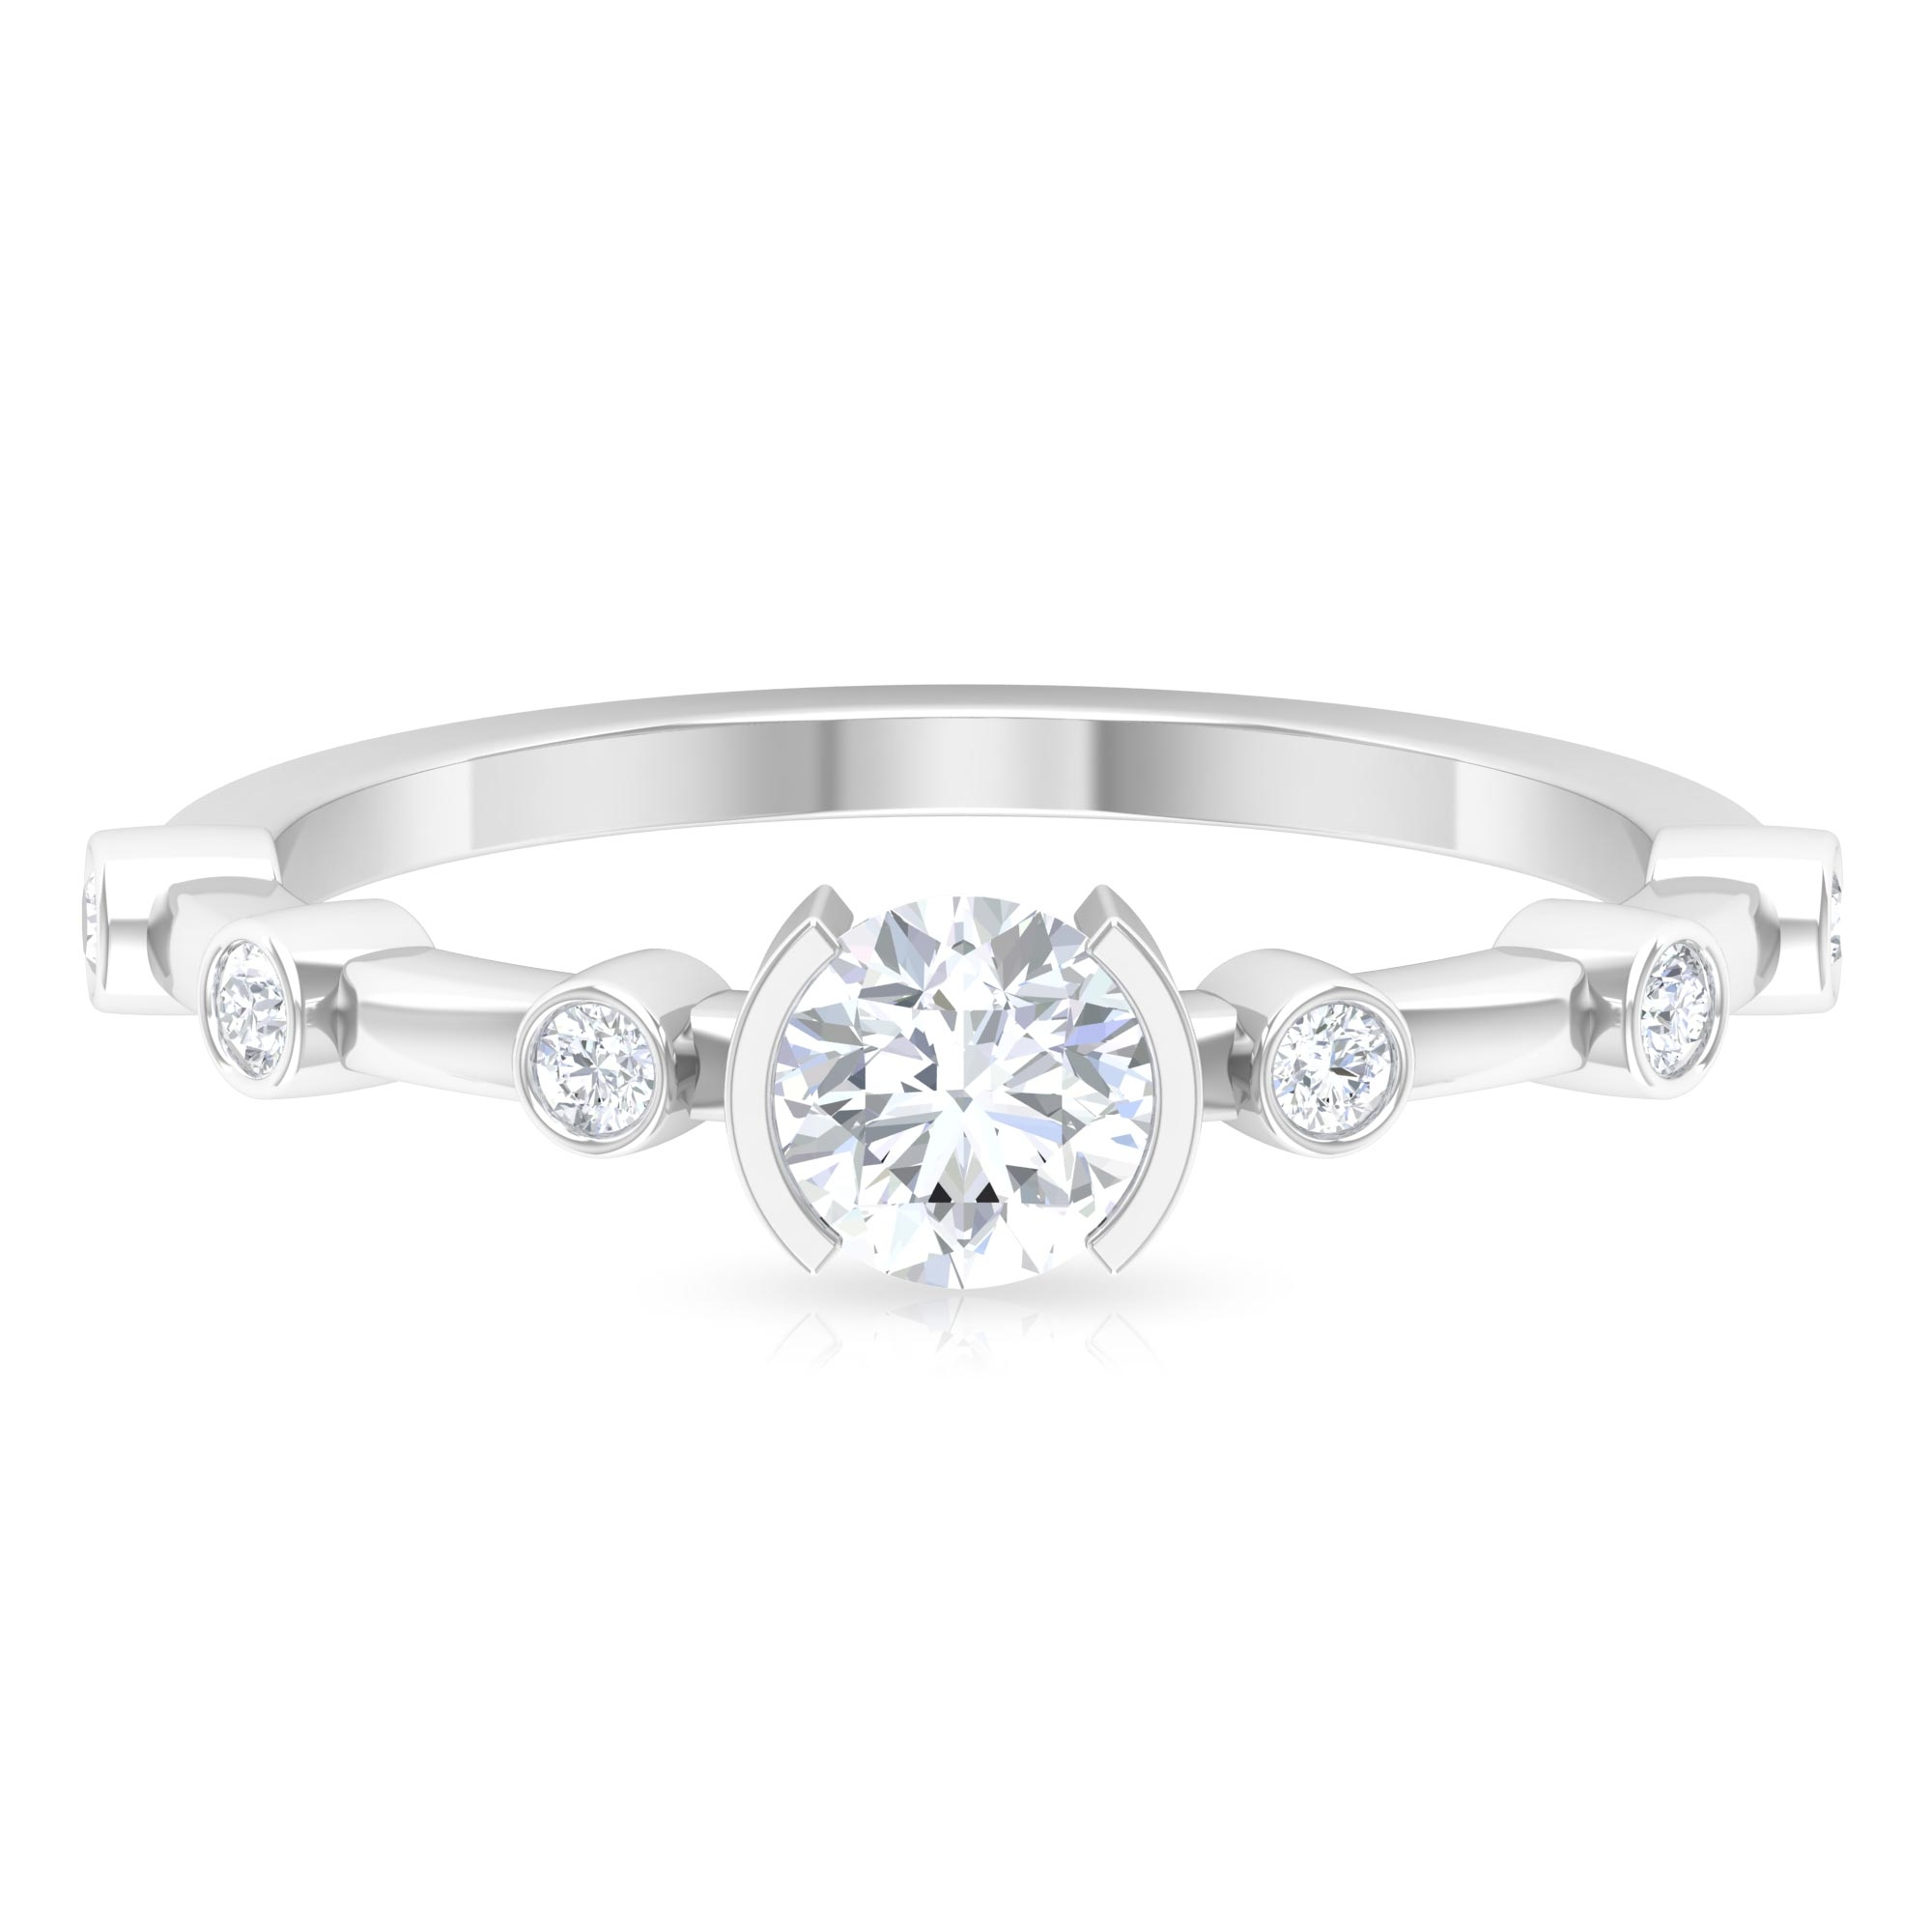 3/4 CT Round Cut Diamond Solitaire Ring in Half Bezel Setting with Spaced Set Side Stones